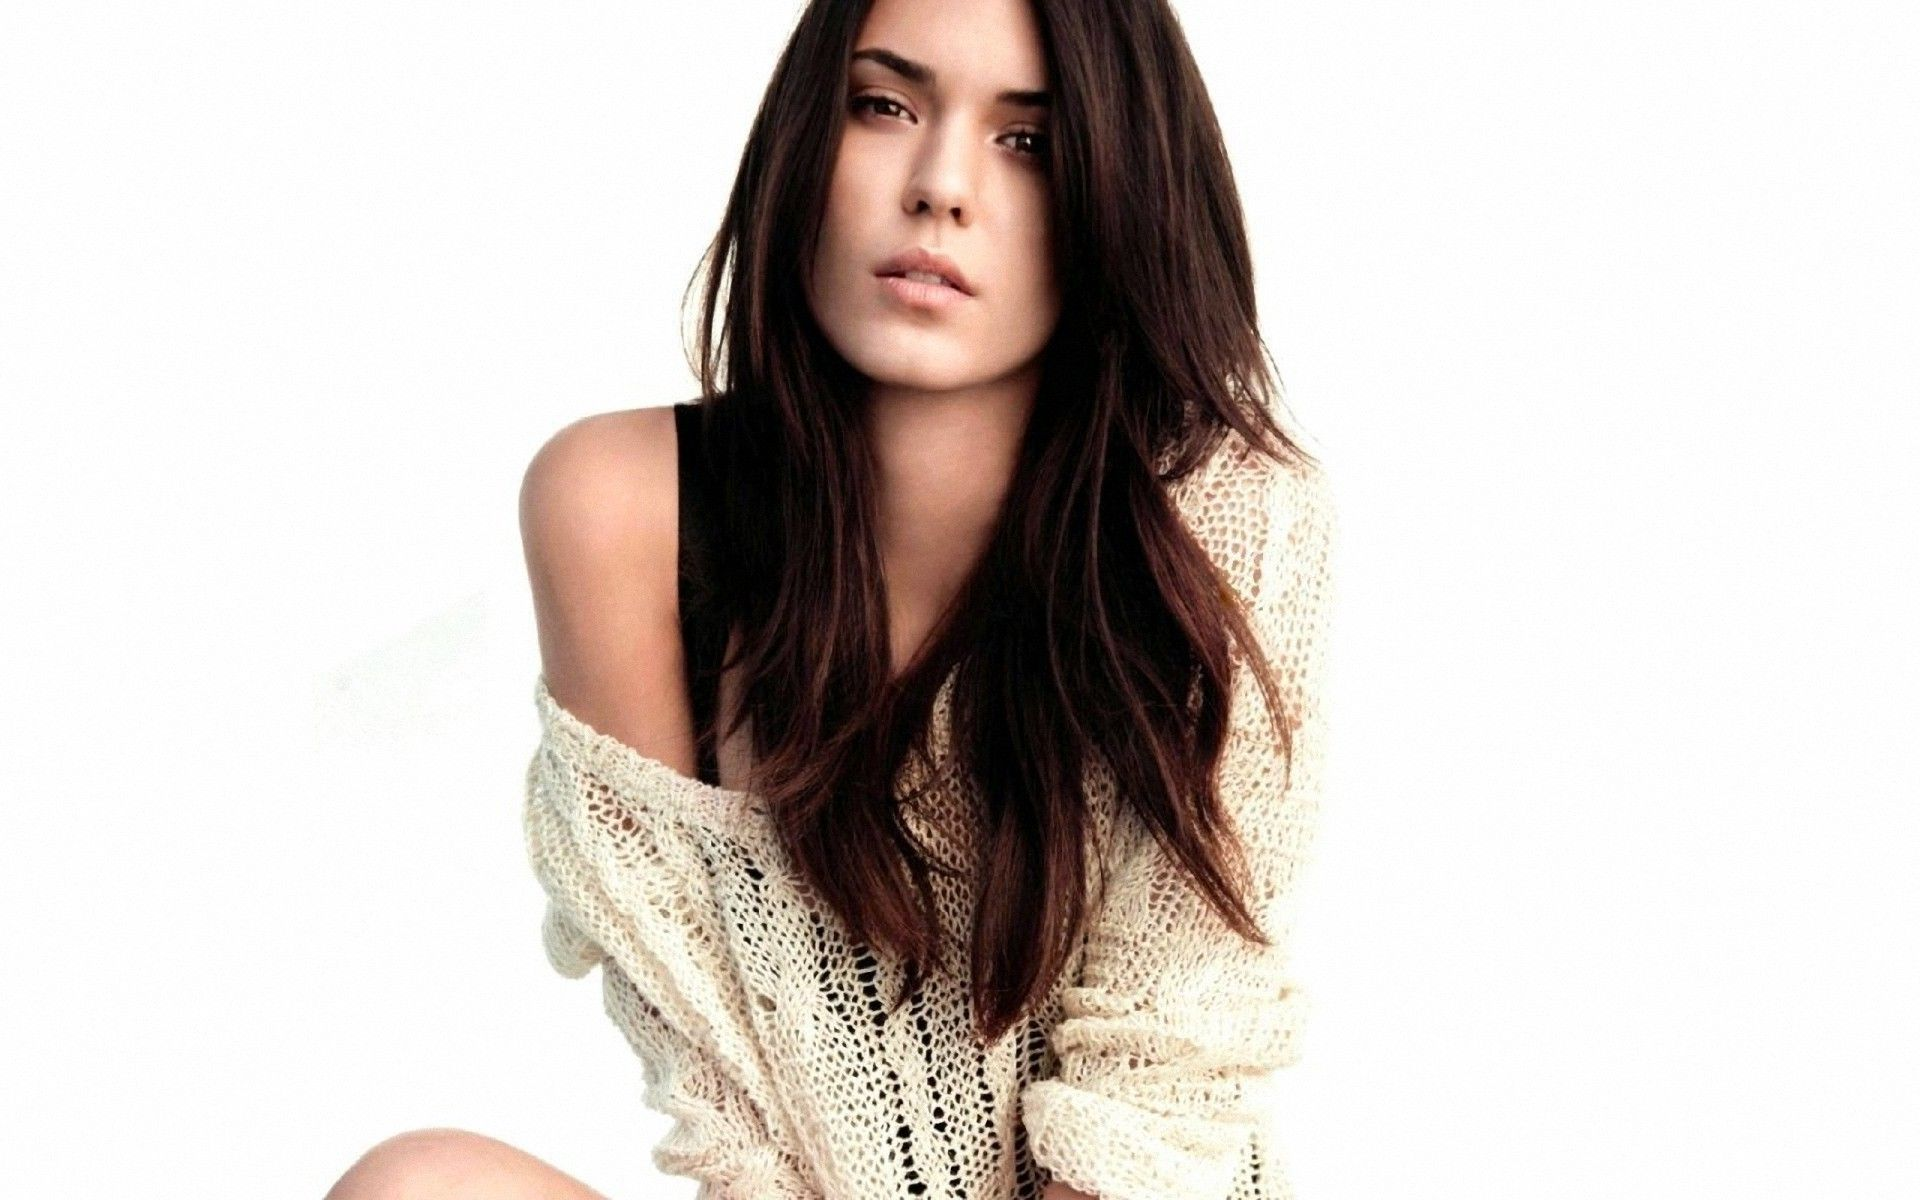 1920x1200 - Odette Annable Wallpapers 17